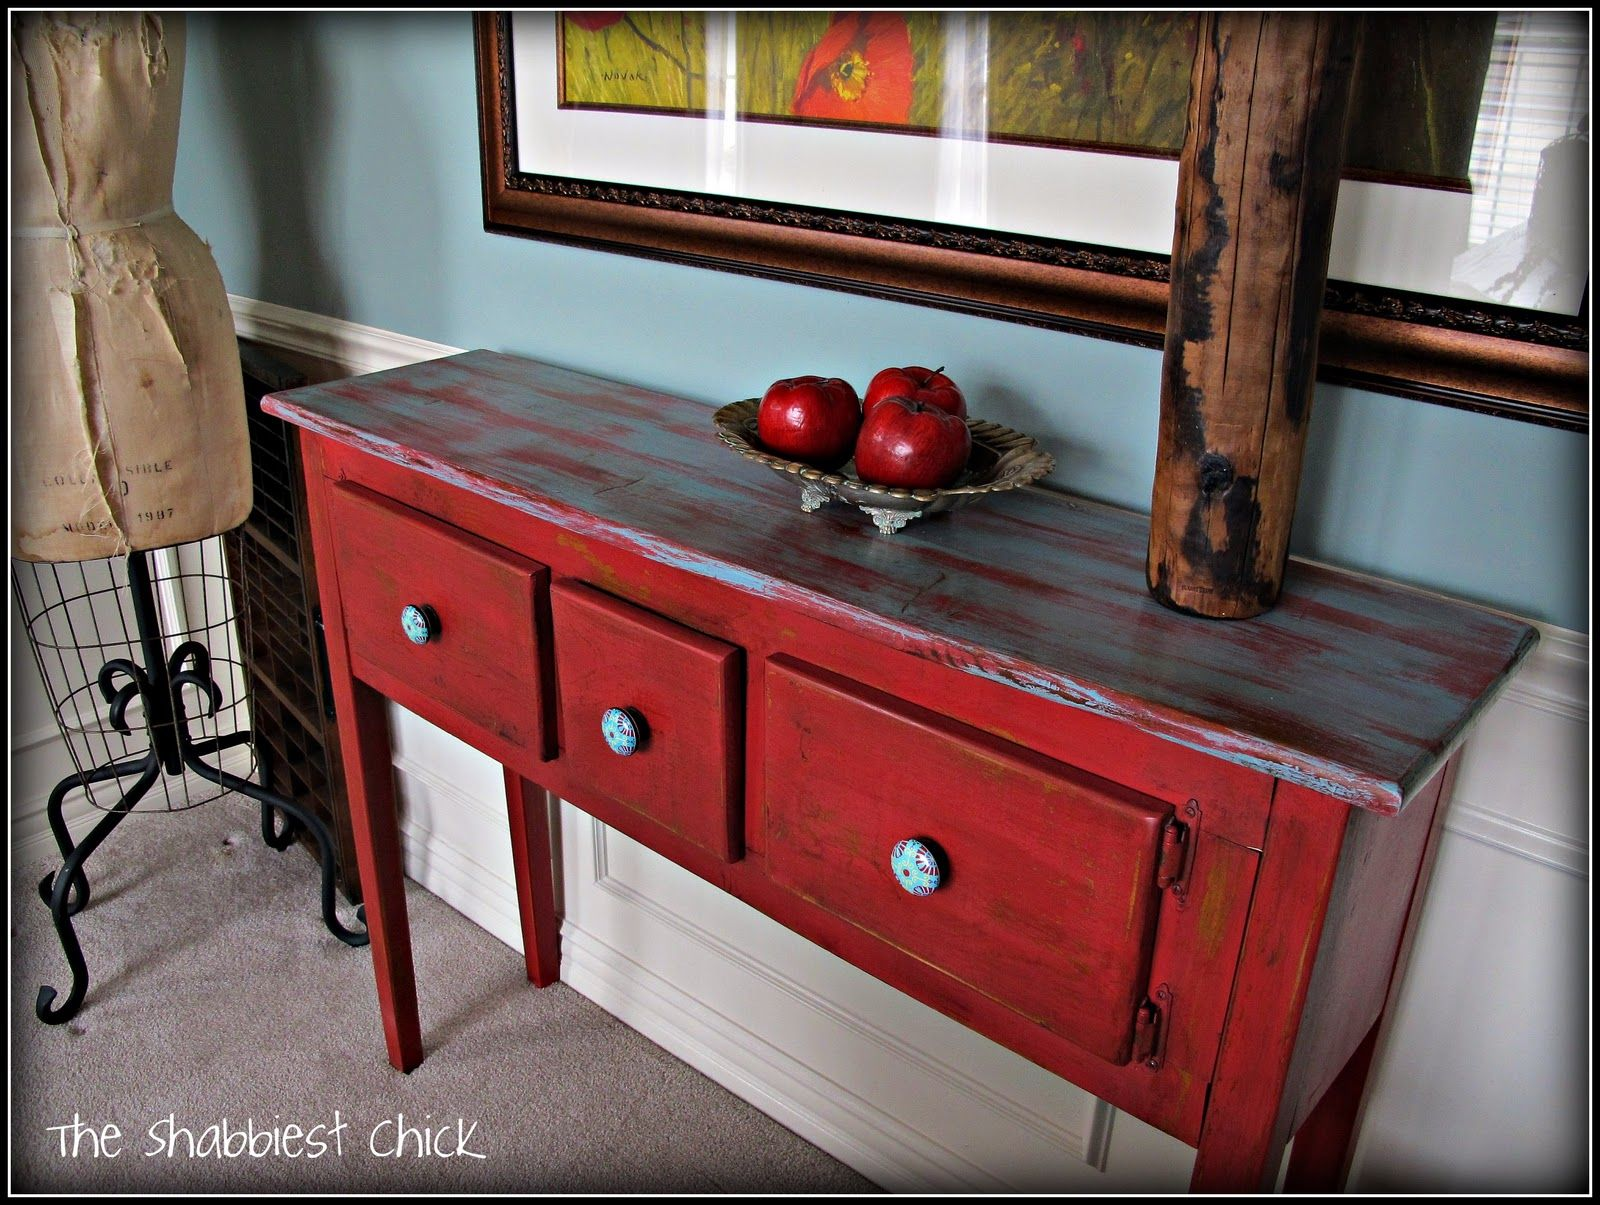 painted red furniture. Painted Red Furniture. Homemade Rustic Table - Google Search | Bbq Area Pinterest . Furniture A